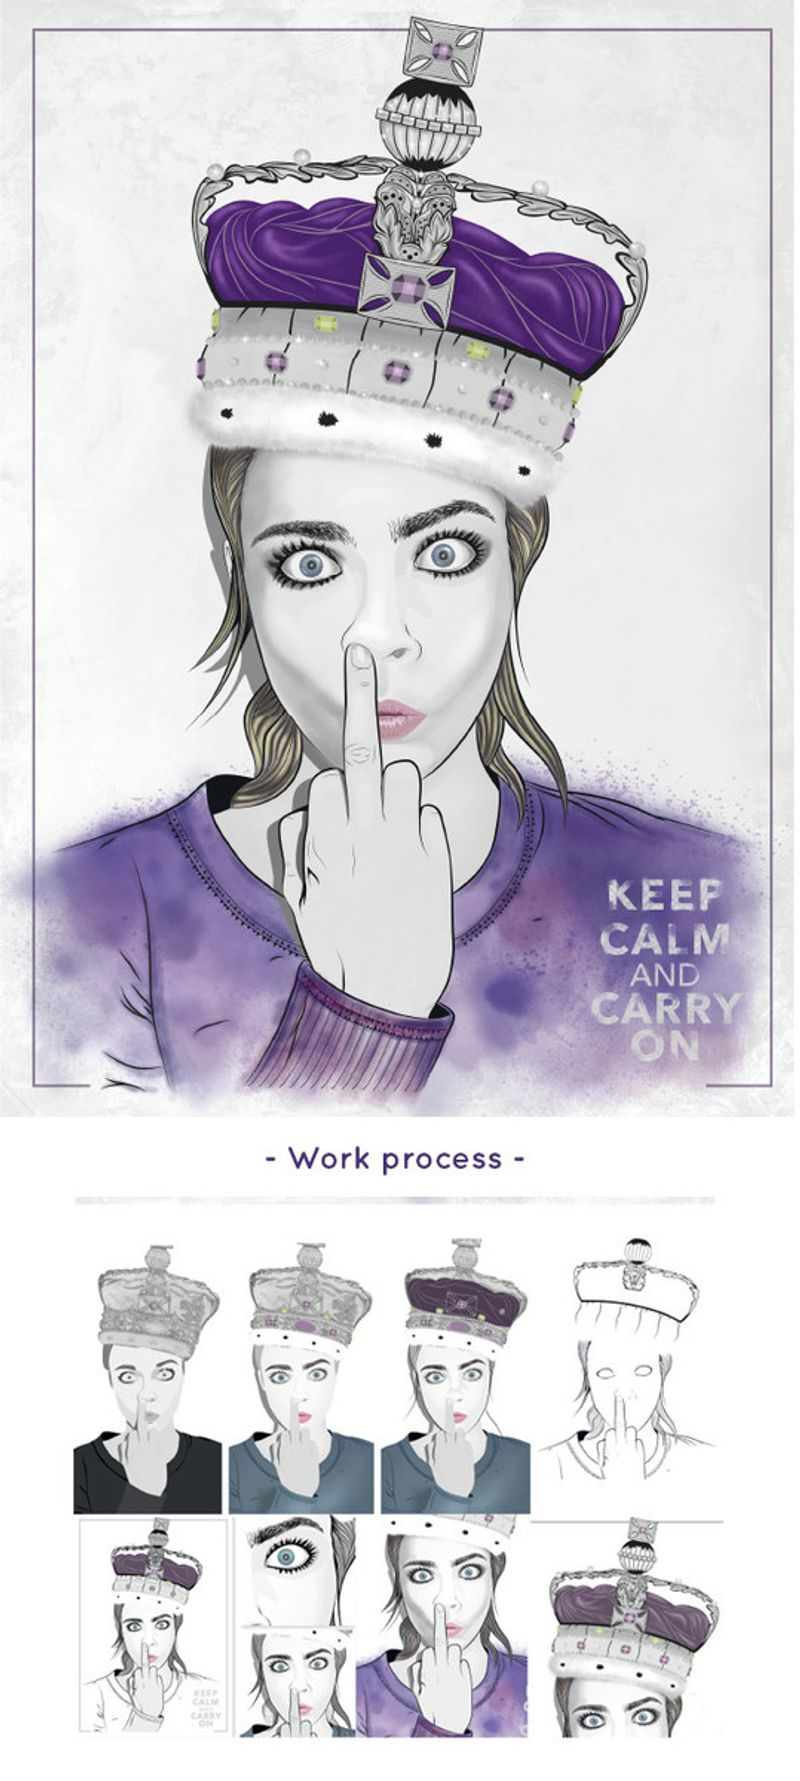 Keep in calm and carry on